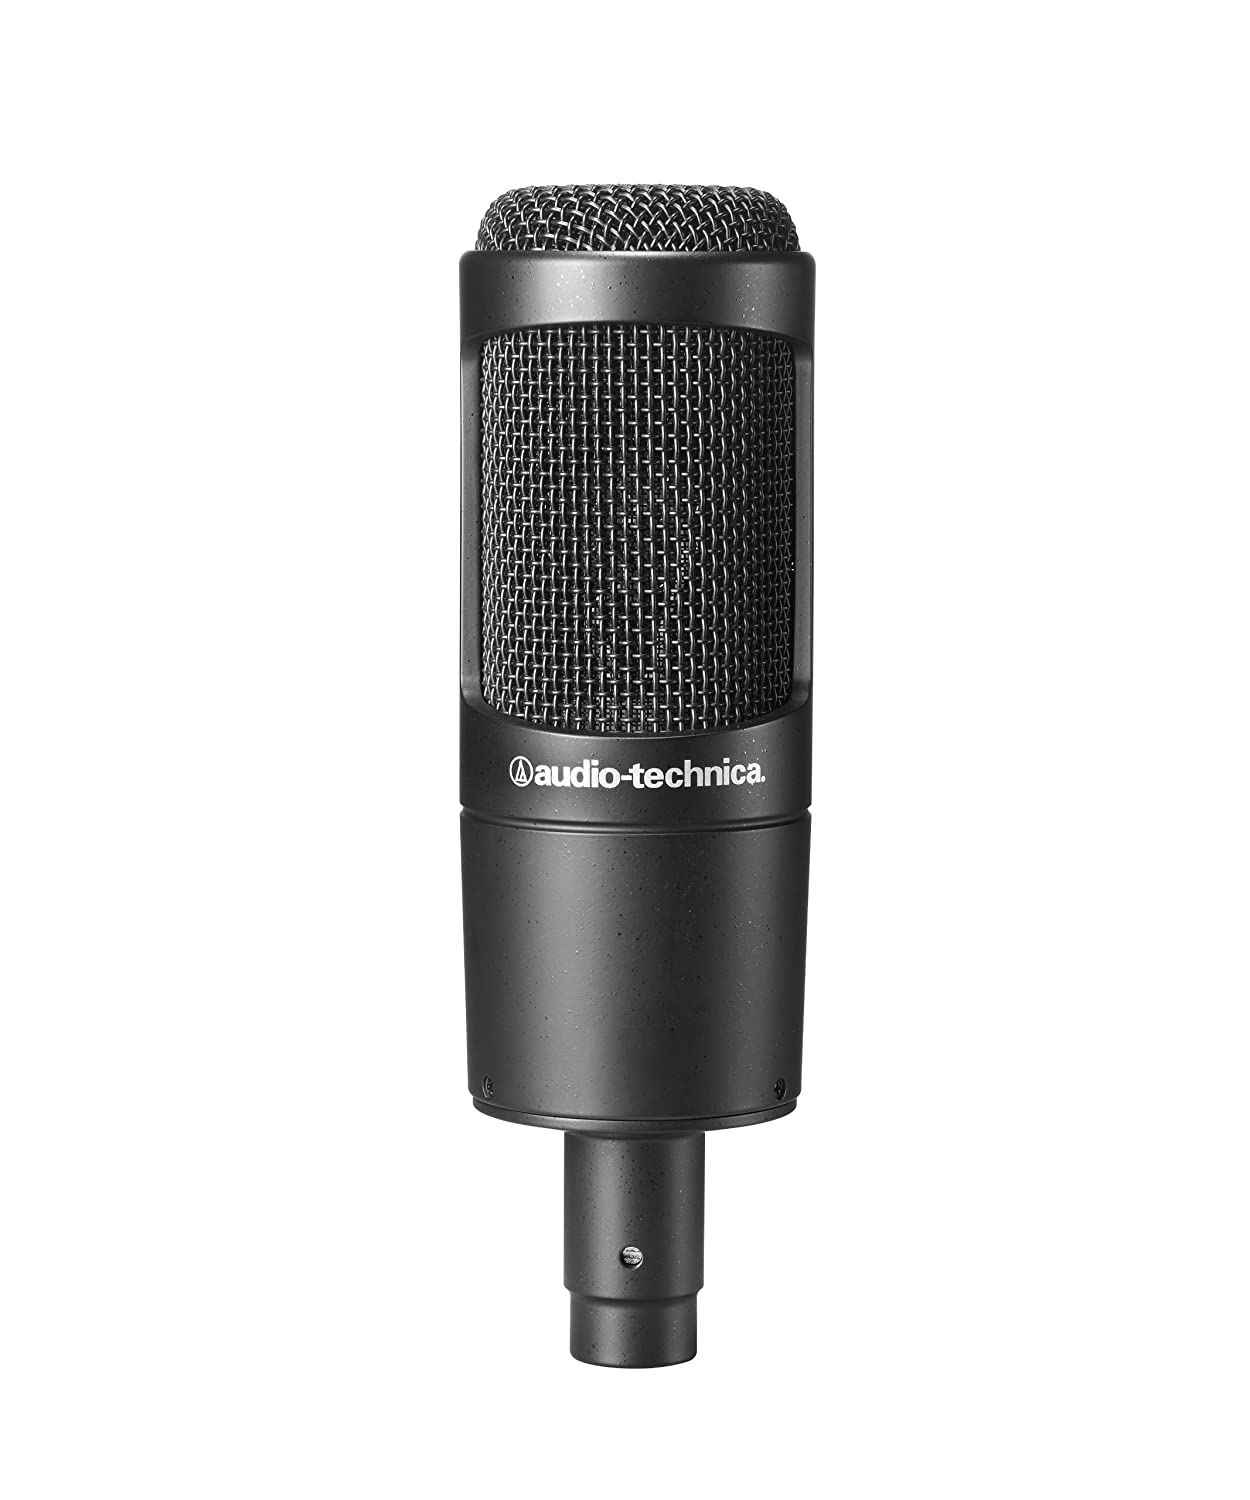 Best Microphones Audio-Technica AT2035